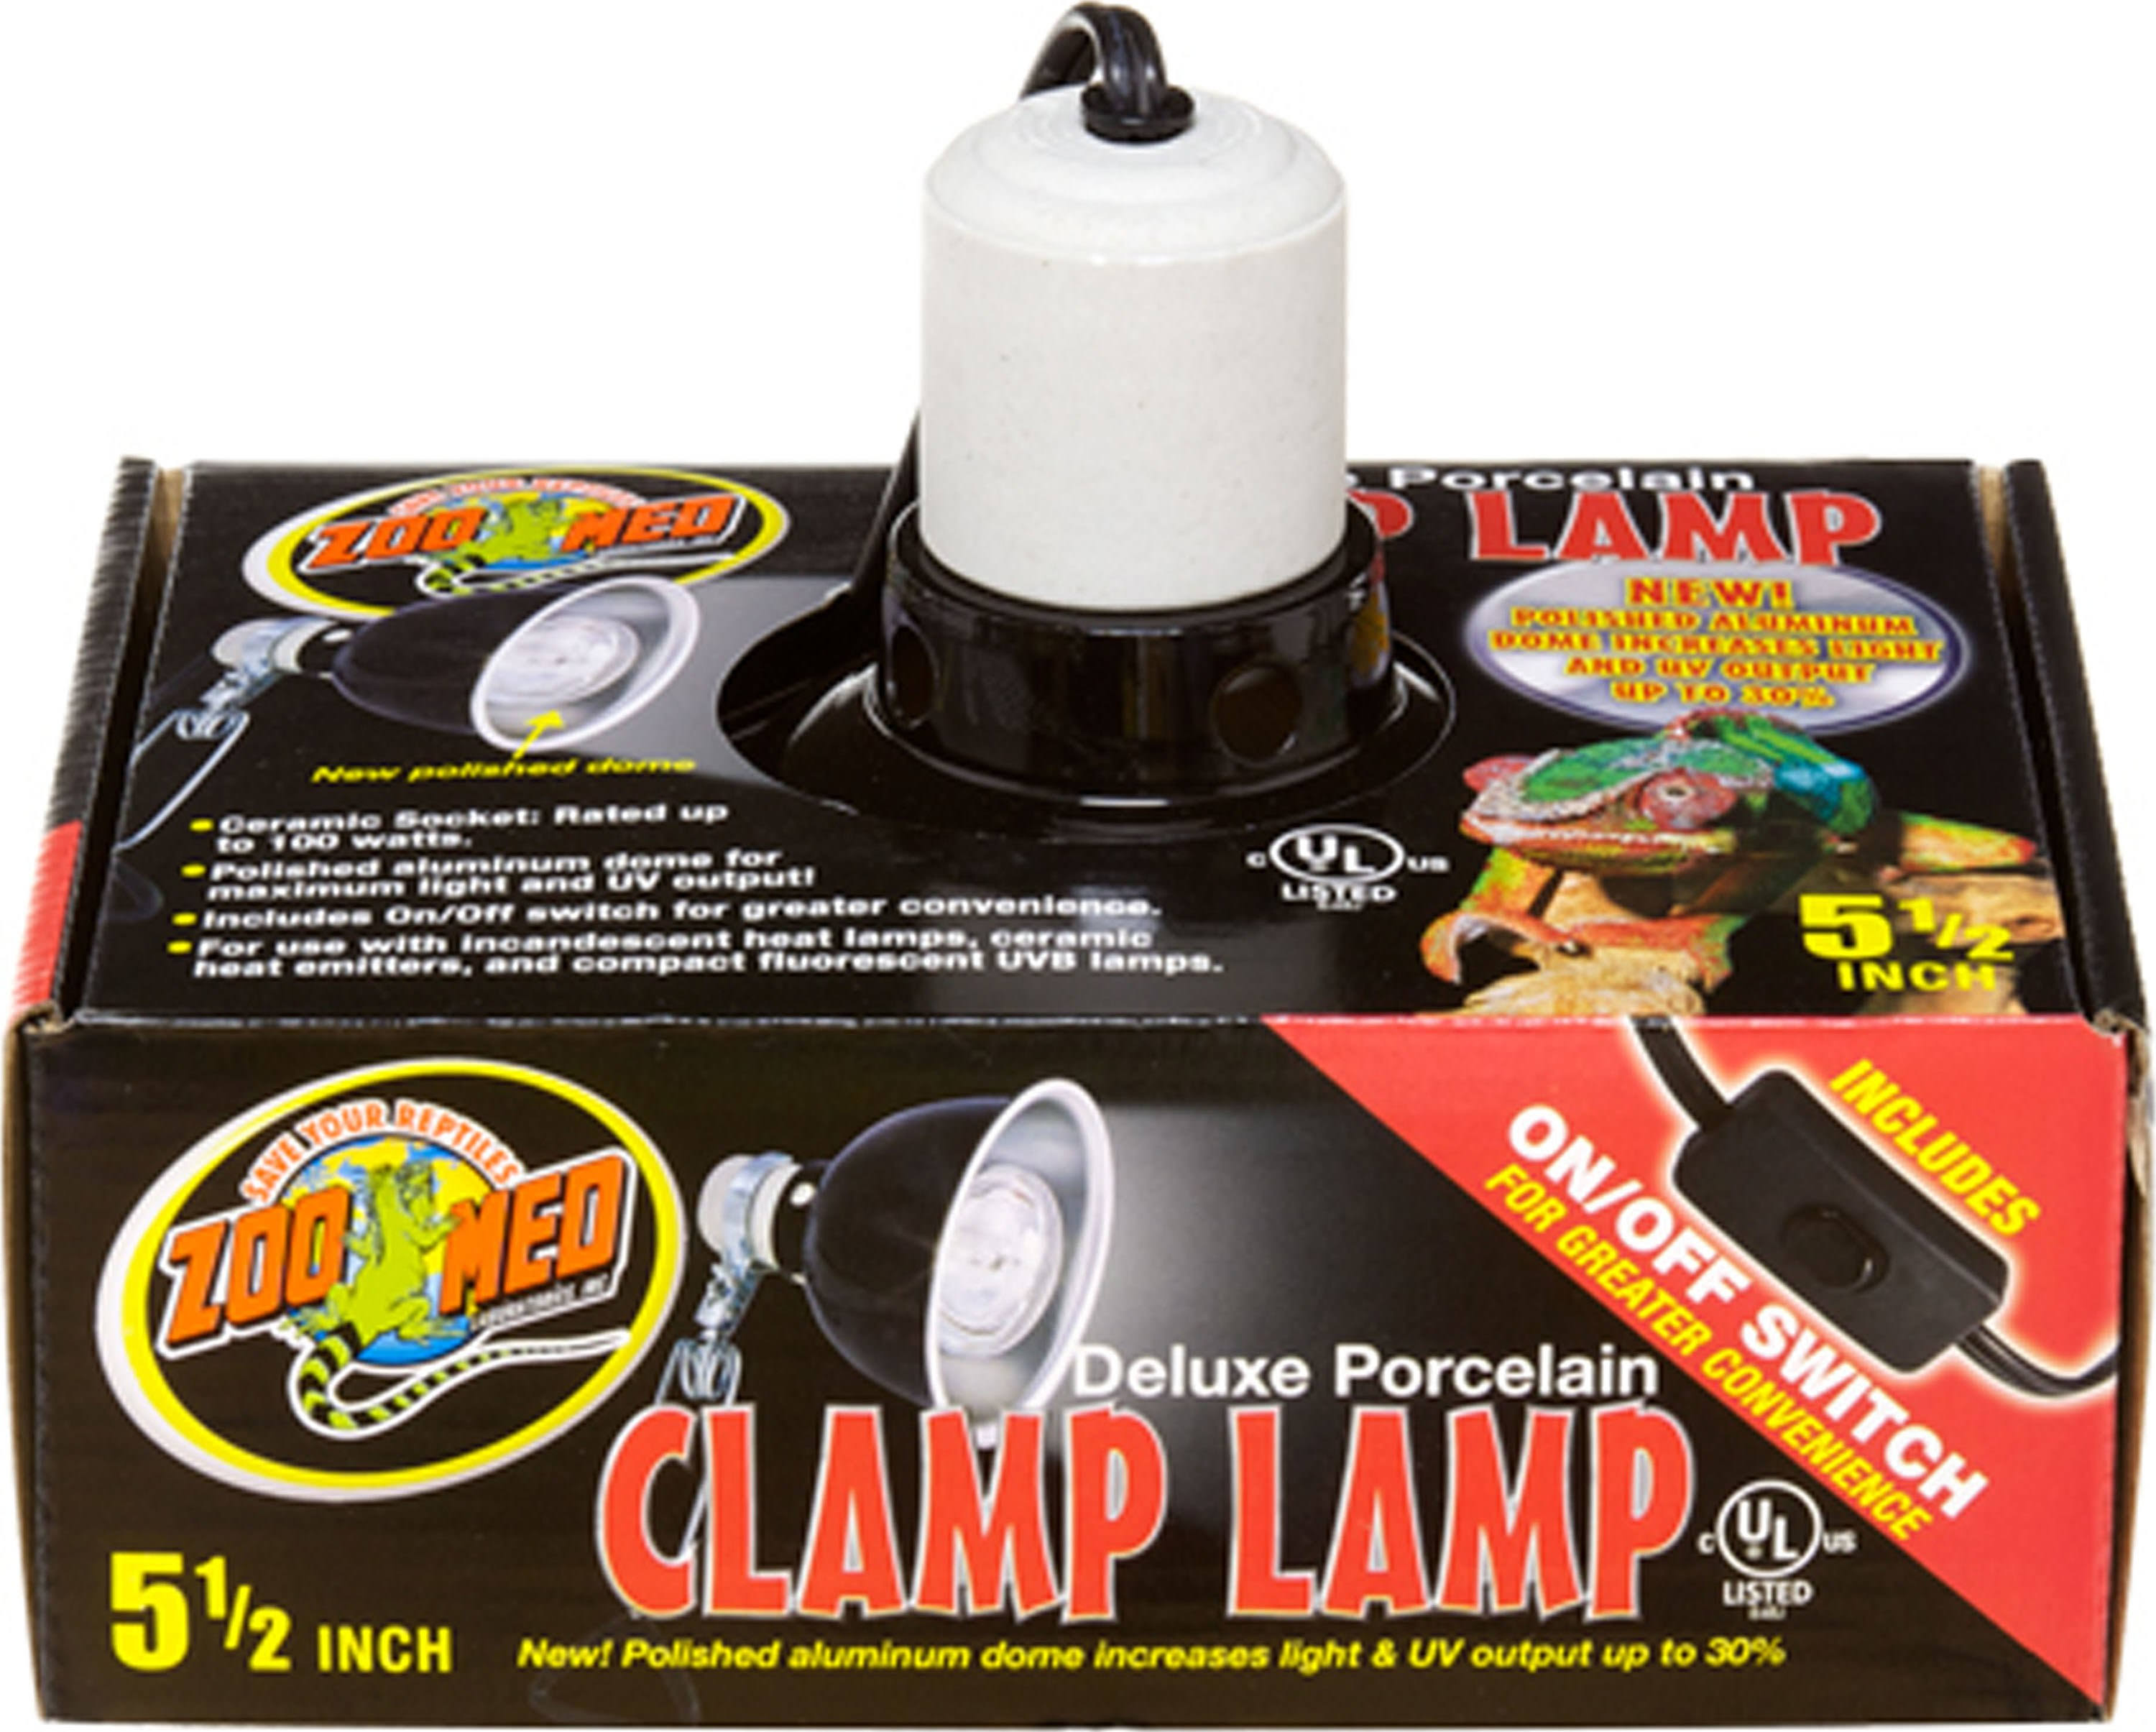 Zoo Med Deluxe Porcelain Clamp Lamp with 8.5-Inch Dome - Black